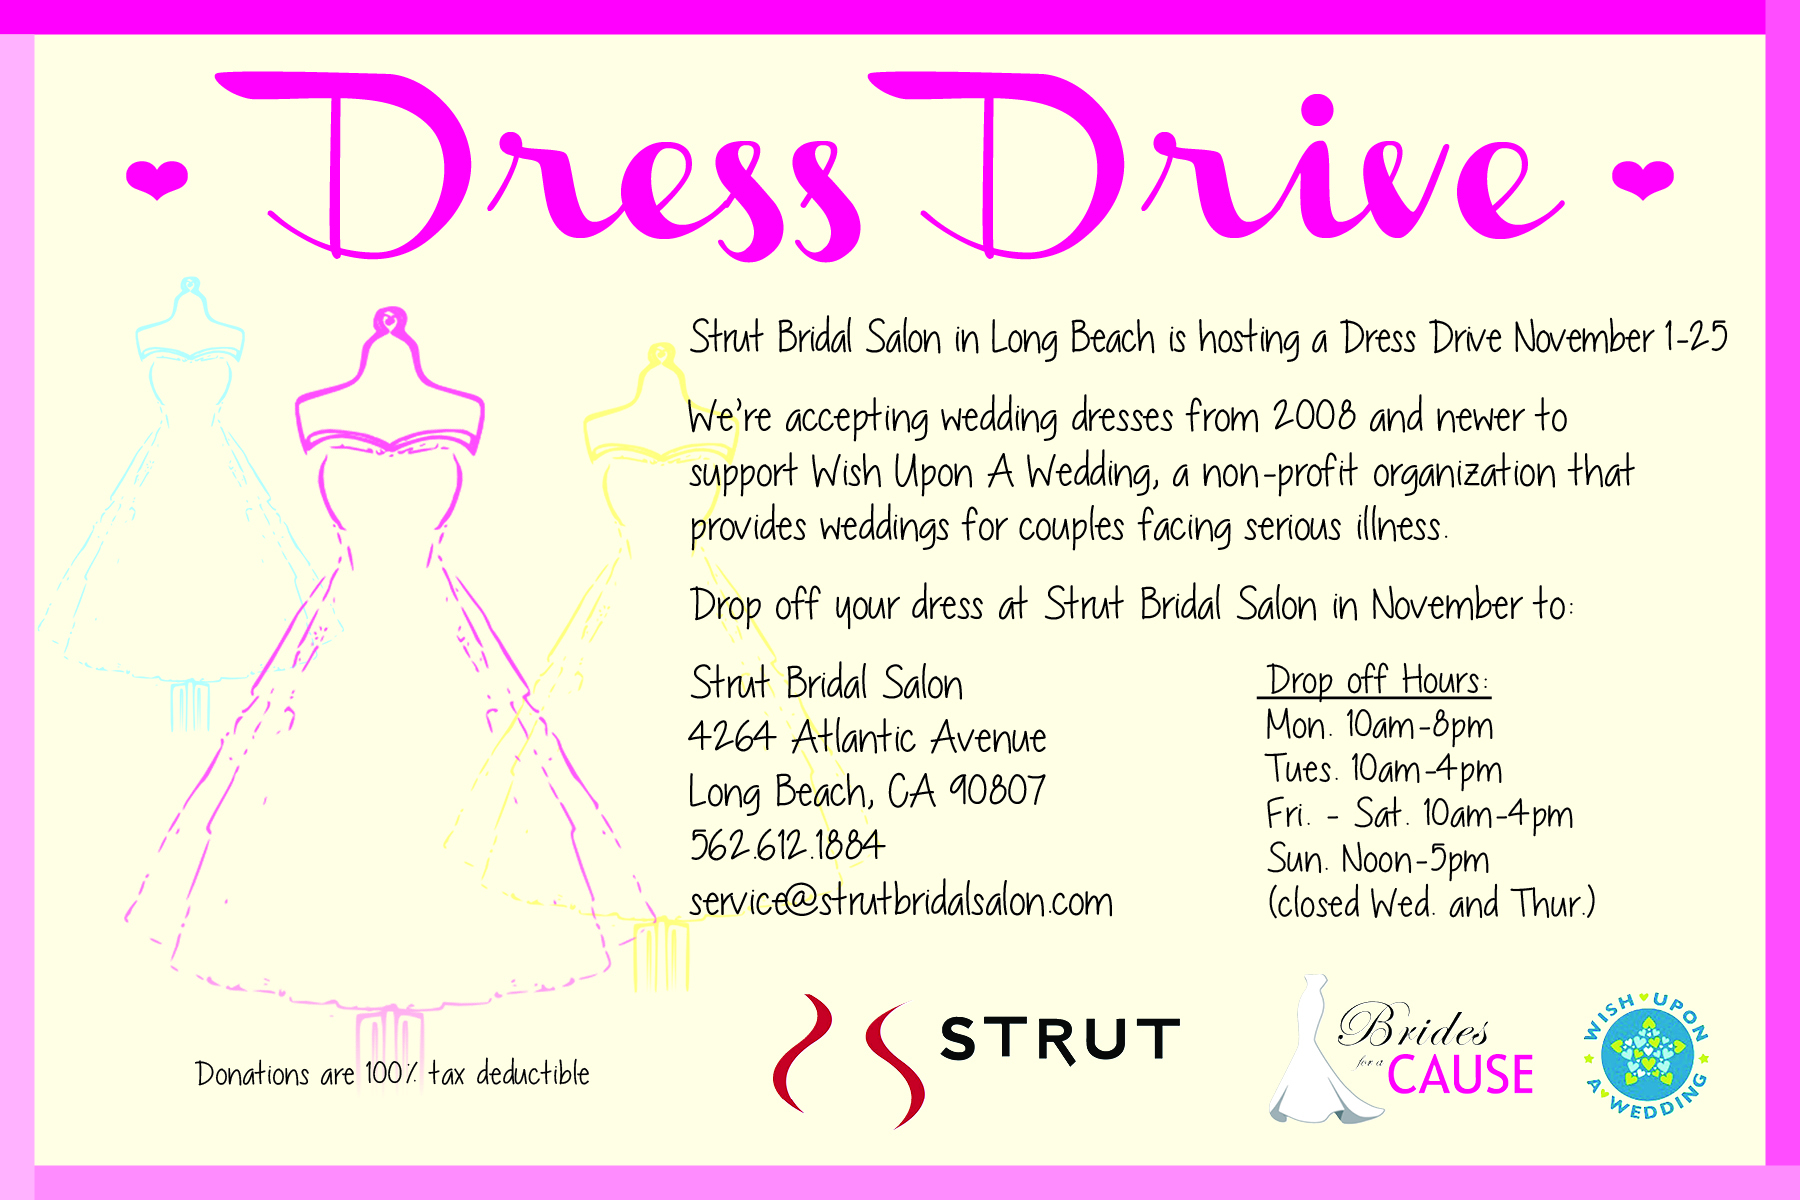 Wedding dresses donations high cut wedding dresses for Donate wedding dress cancer